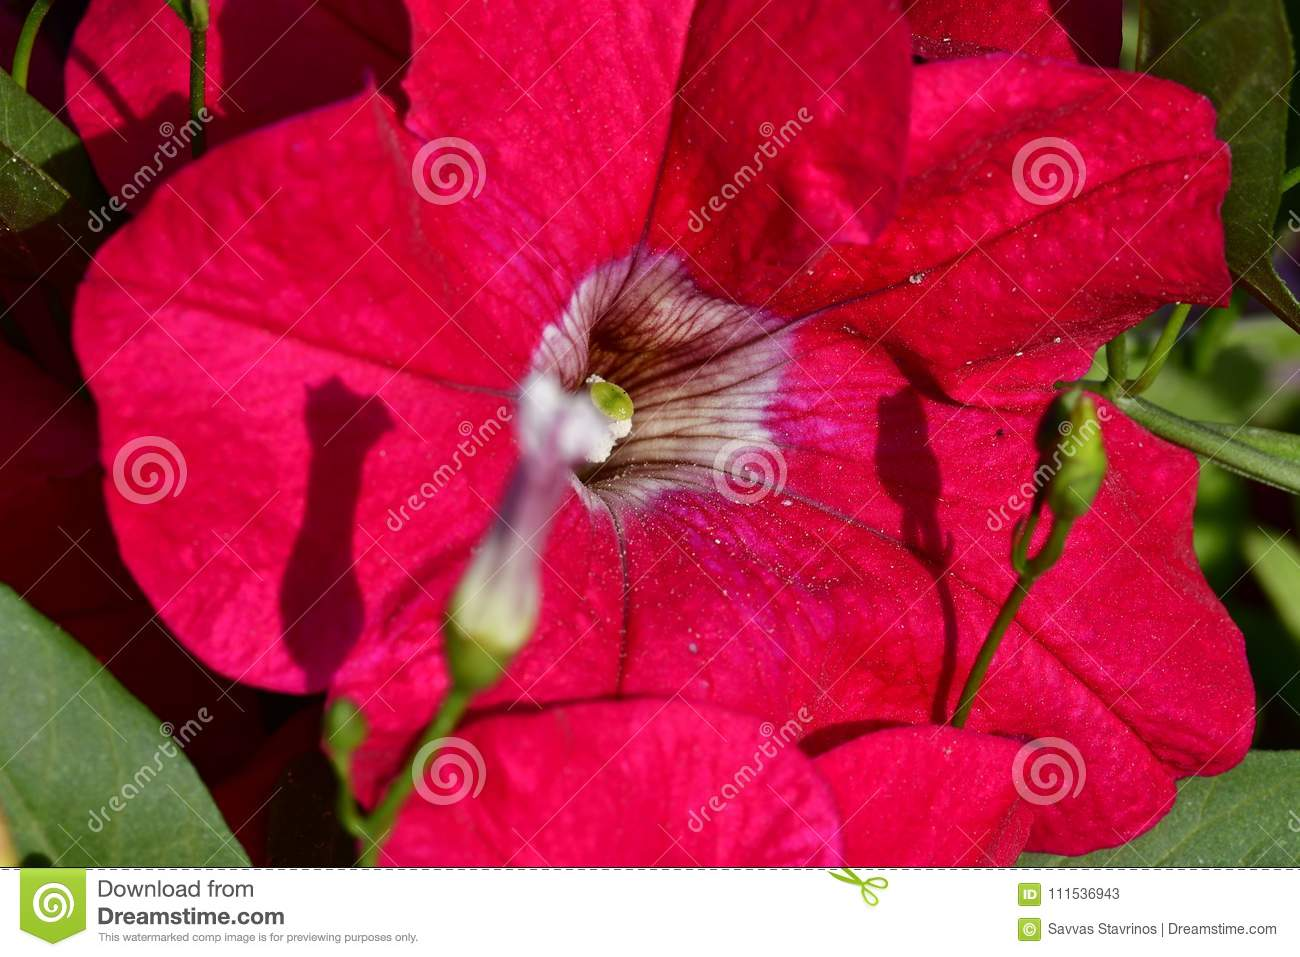 Red Color Of Flowers At Spring Time Stock Image - Image of smaller ...